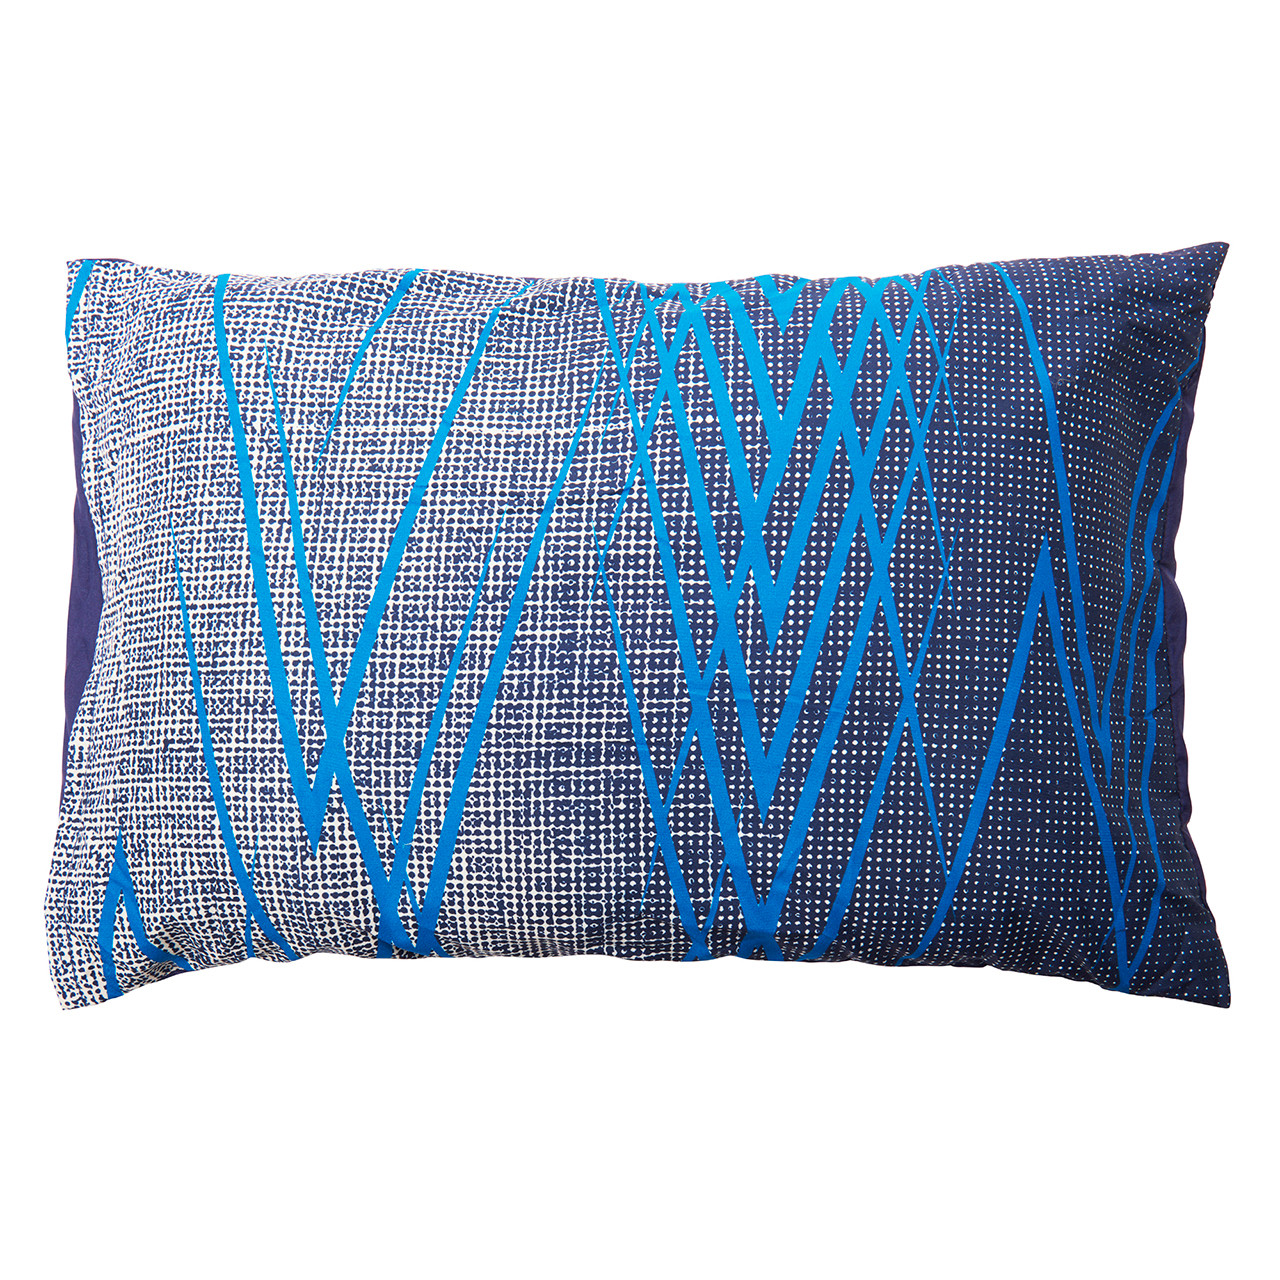 Wenzel Camp pillow, black and white with blue stripes, laying flat